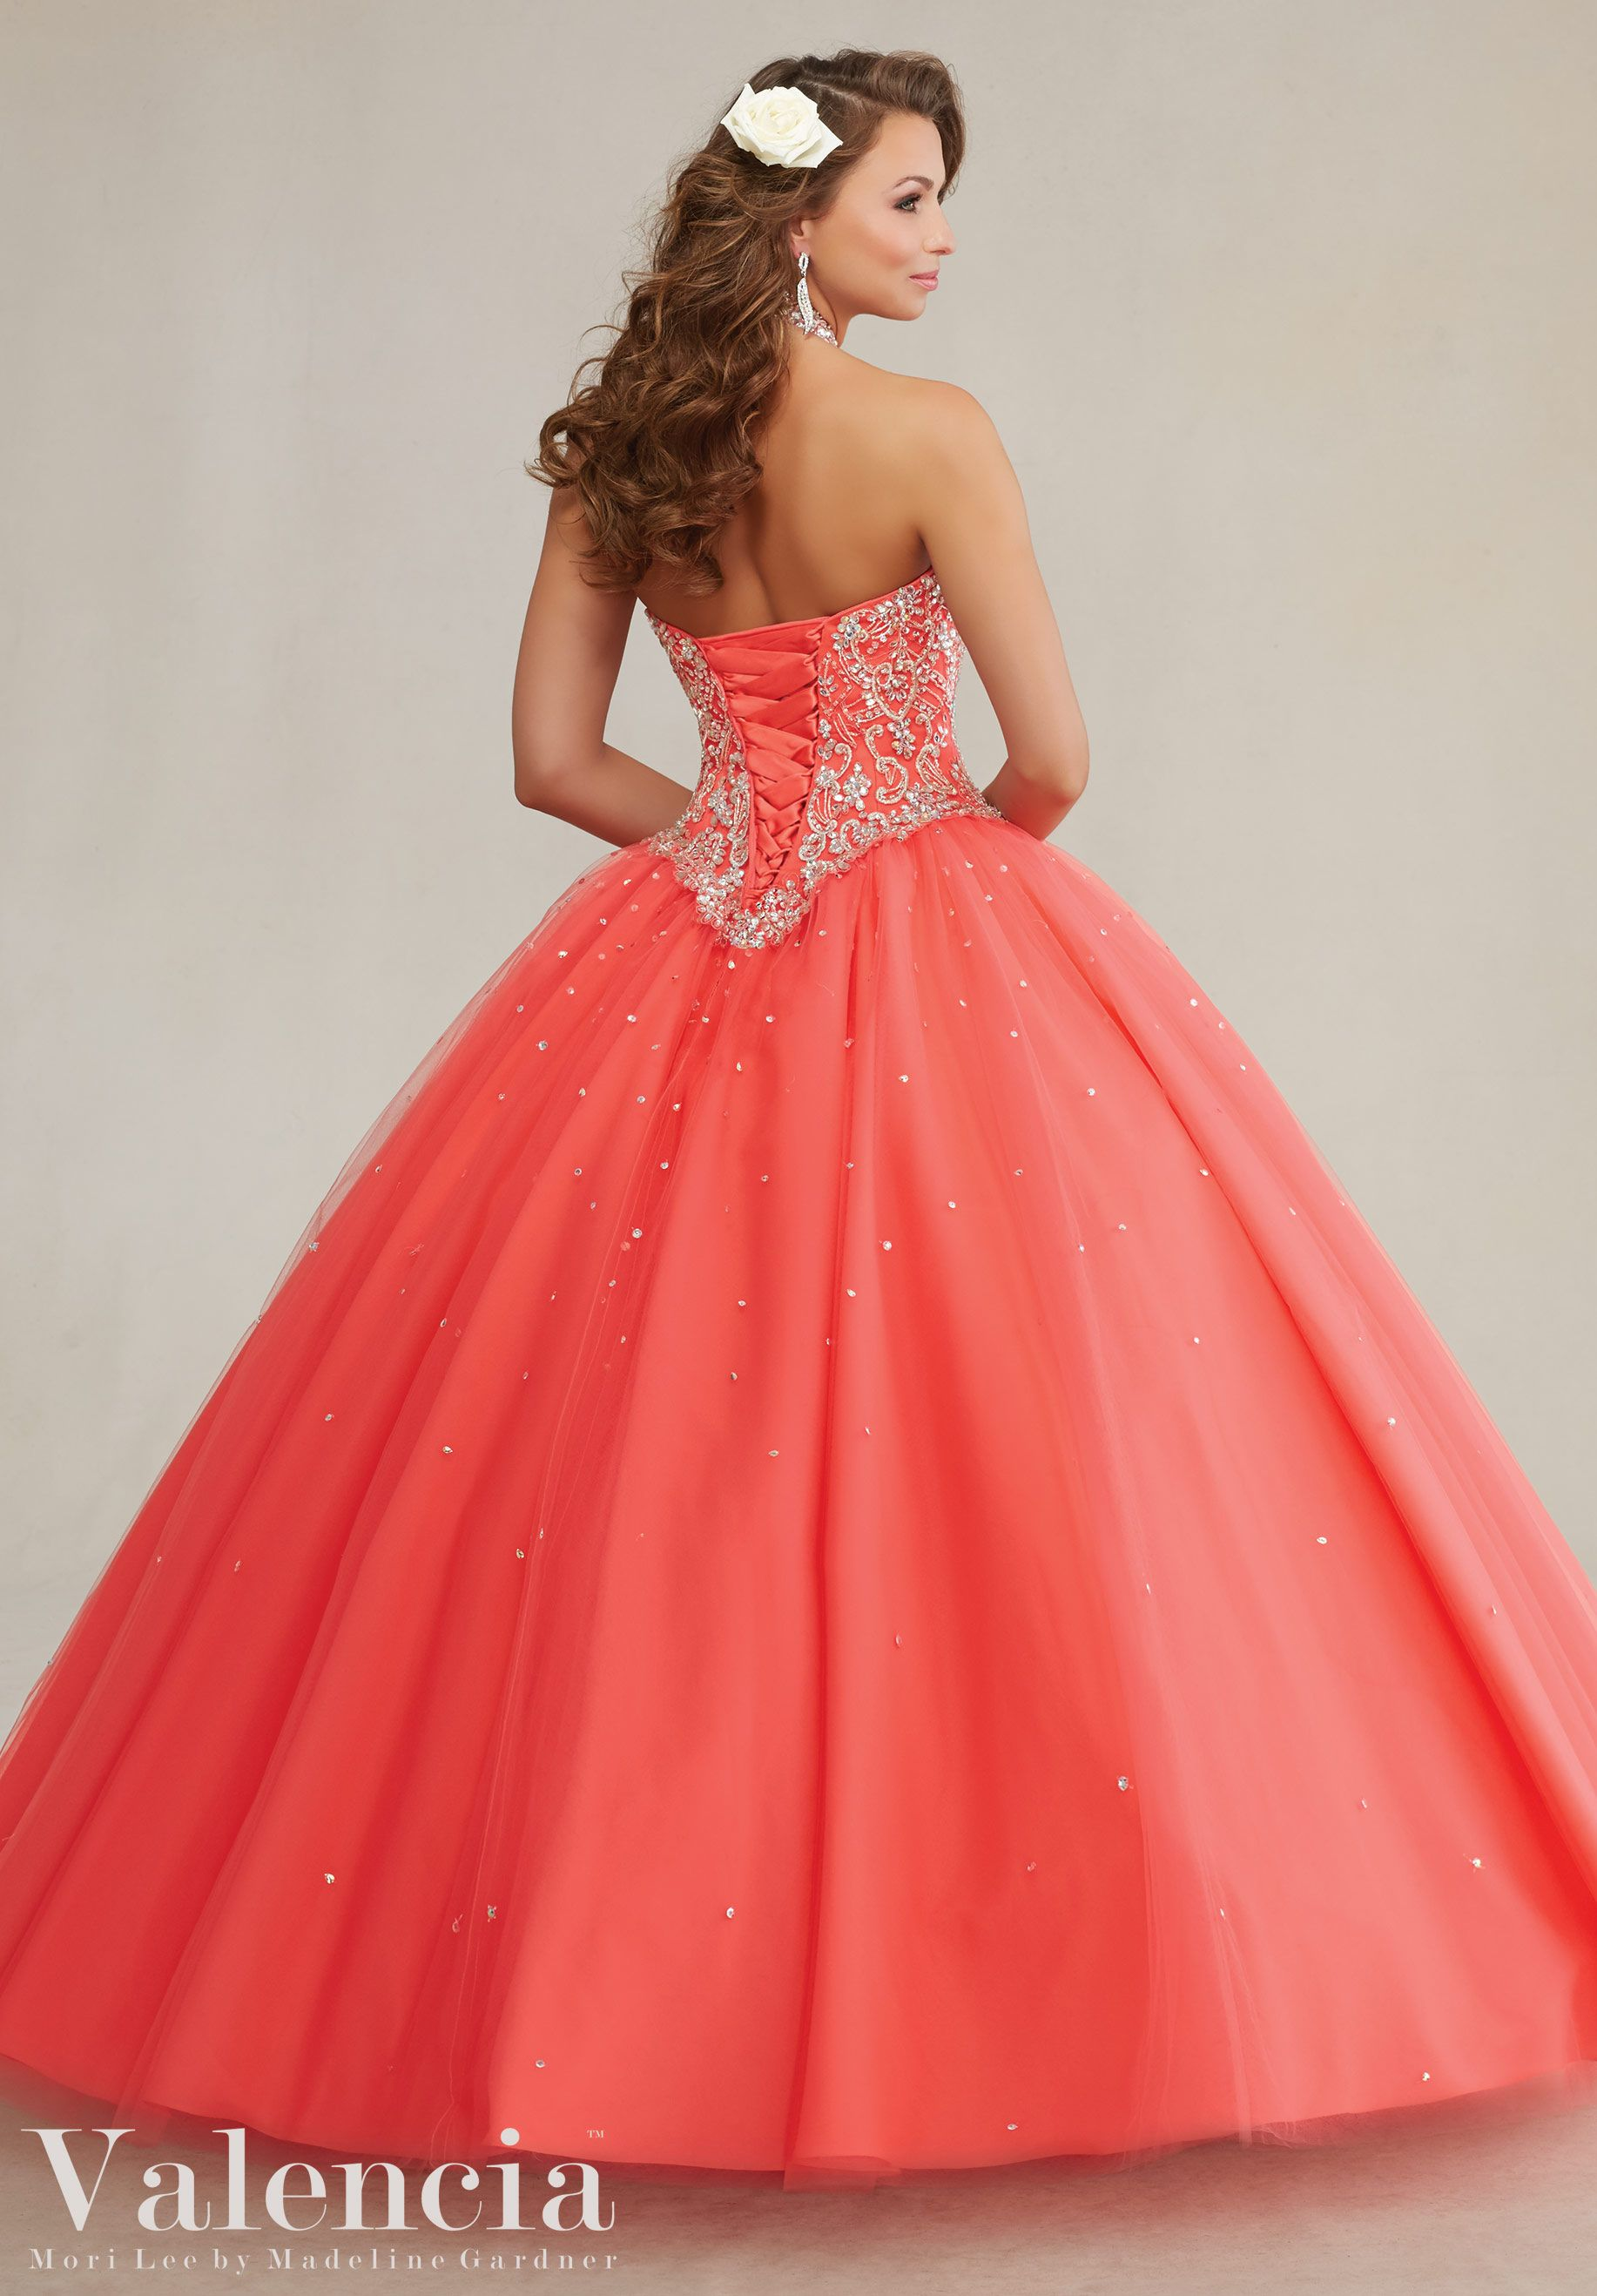 Colors Available Coral, Pink Panther, Freeze And White Quinceanera Dresses